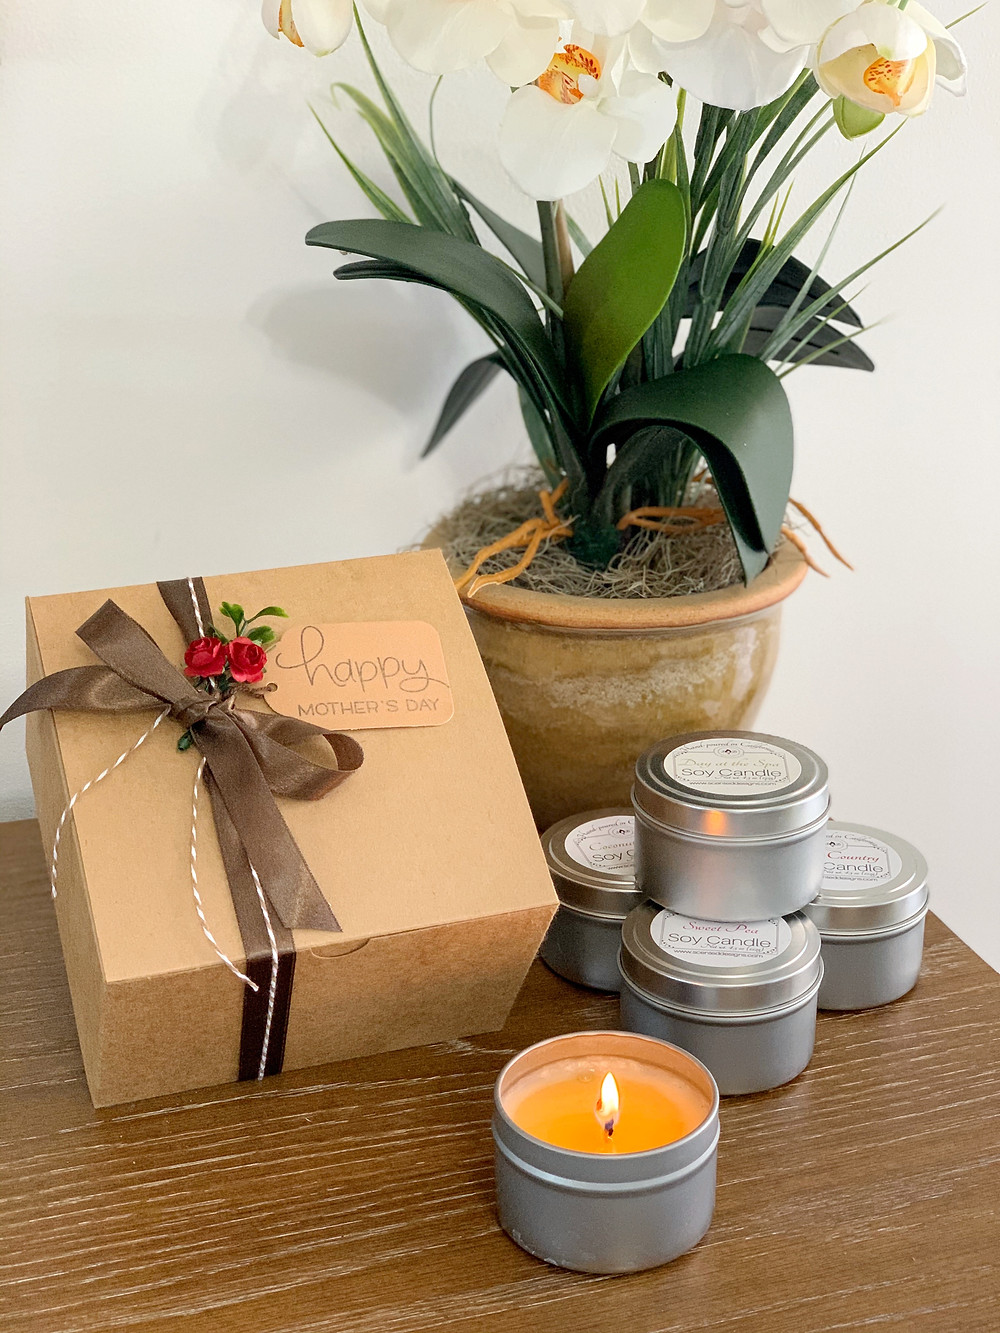 Mothers Day Gift Box with orchid plant and candles